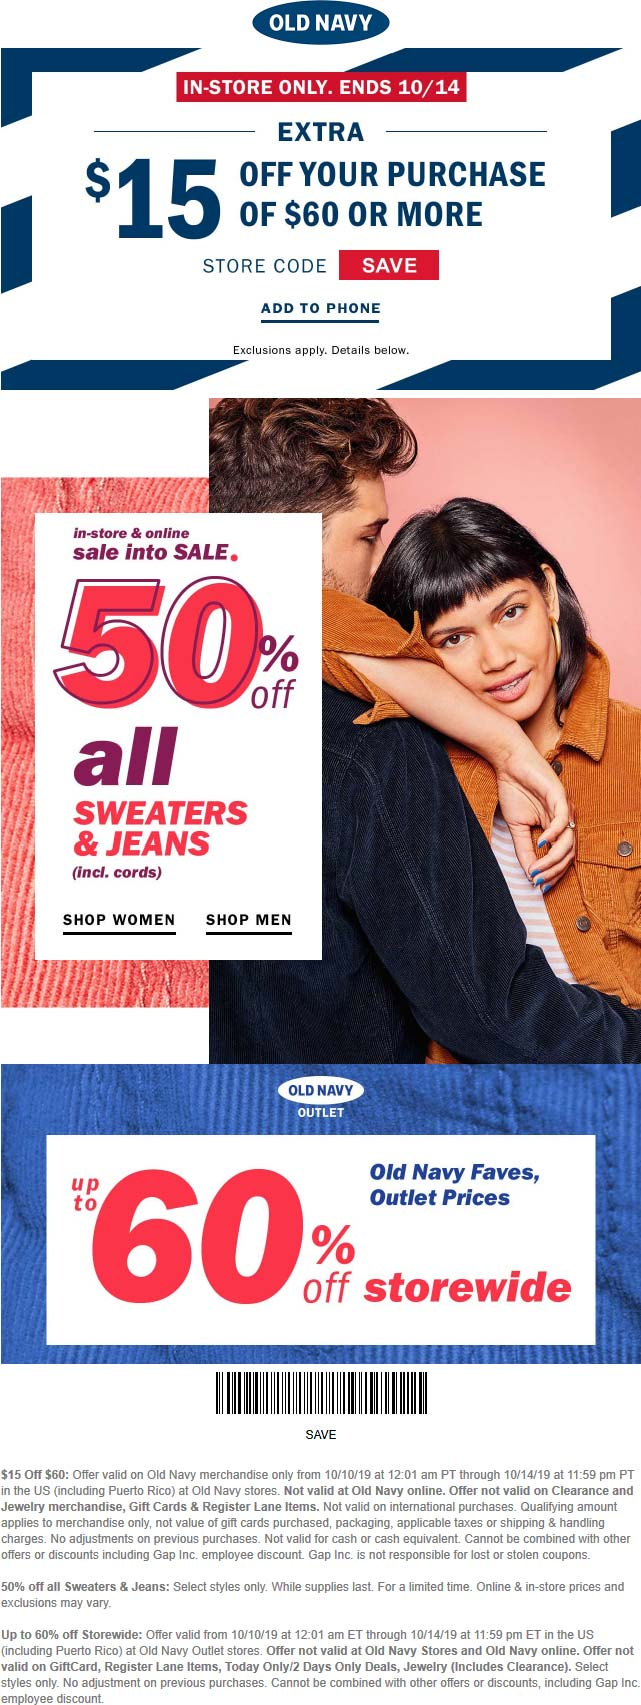 Old Navy Coupon November 2019 $15 off $60 & more at Old Navy